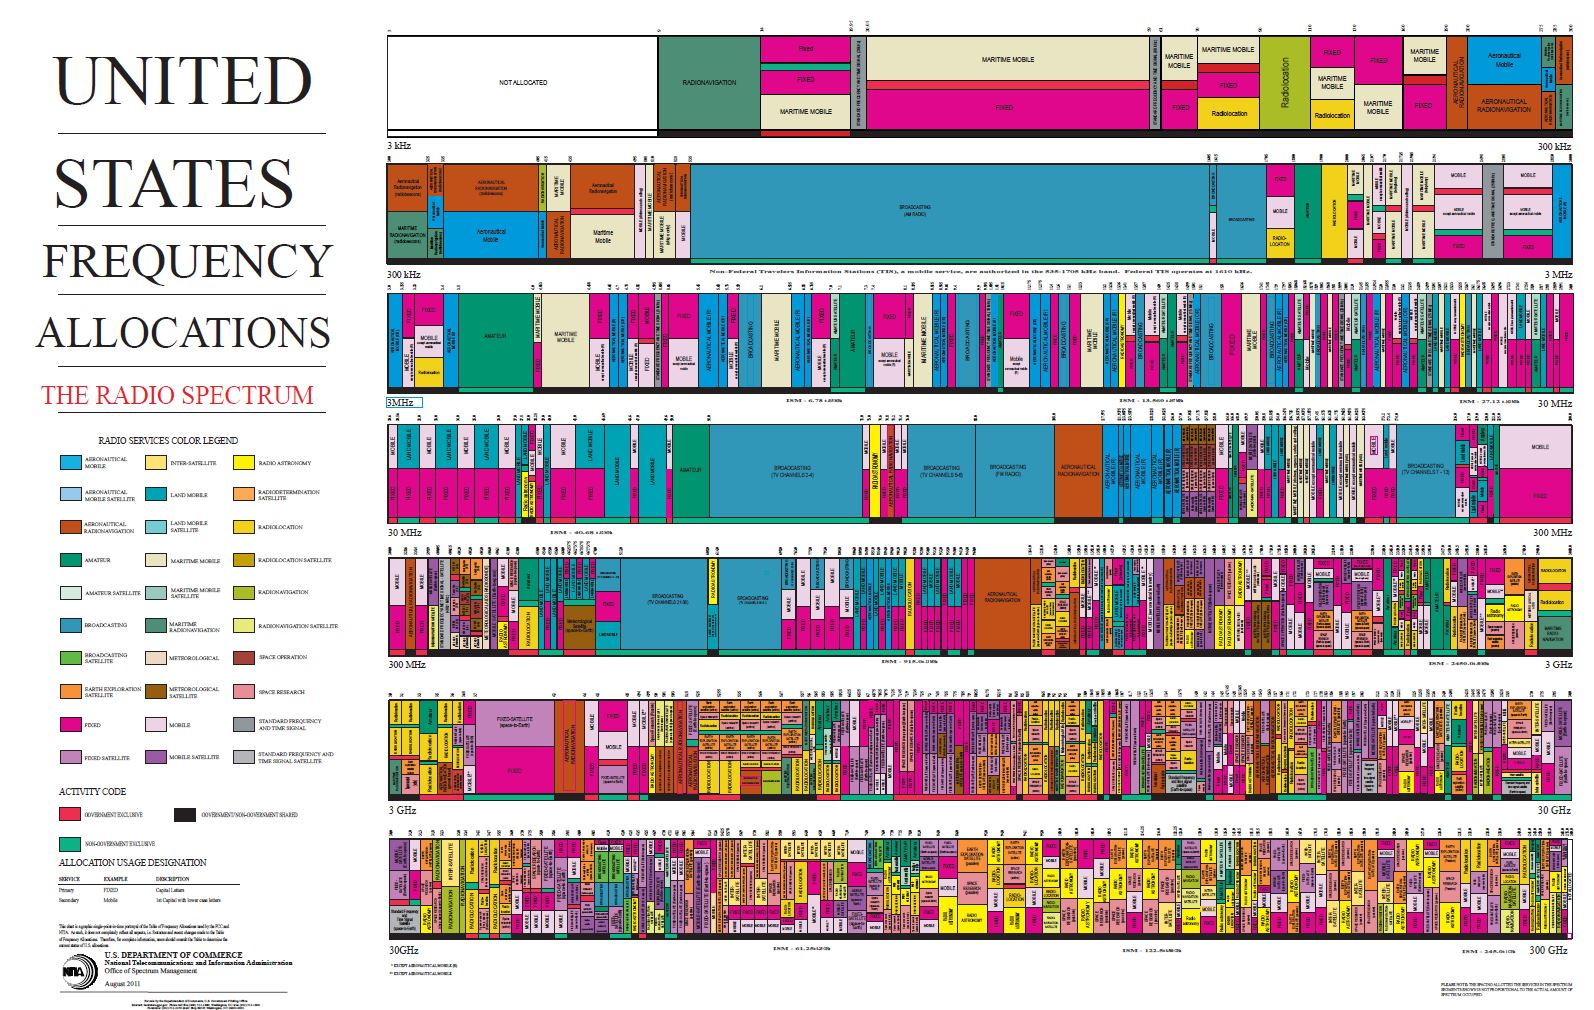 US Spectrum Allocation chart, courtesy of the US Department of Commerce.